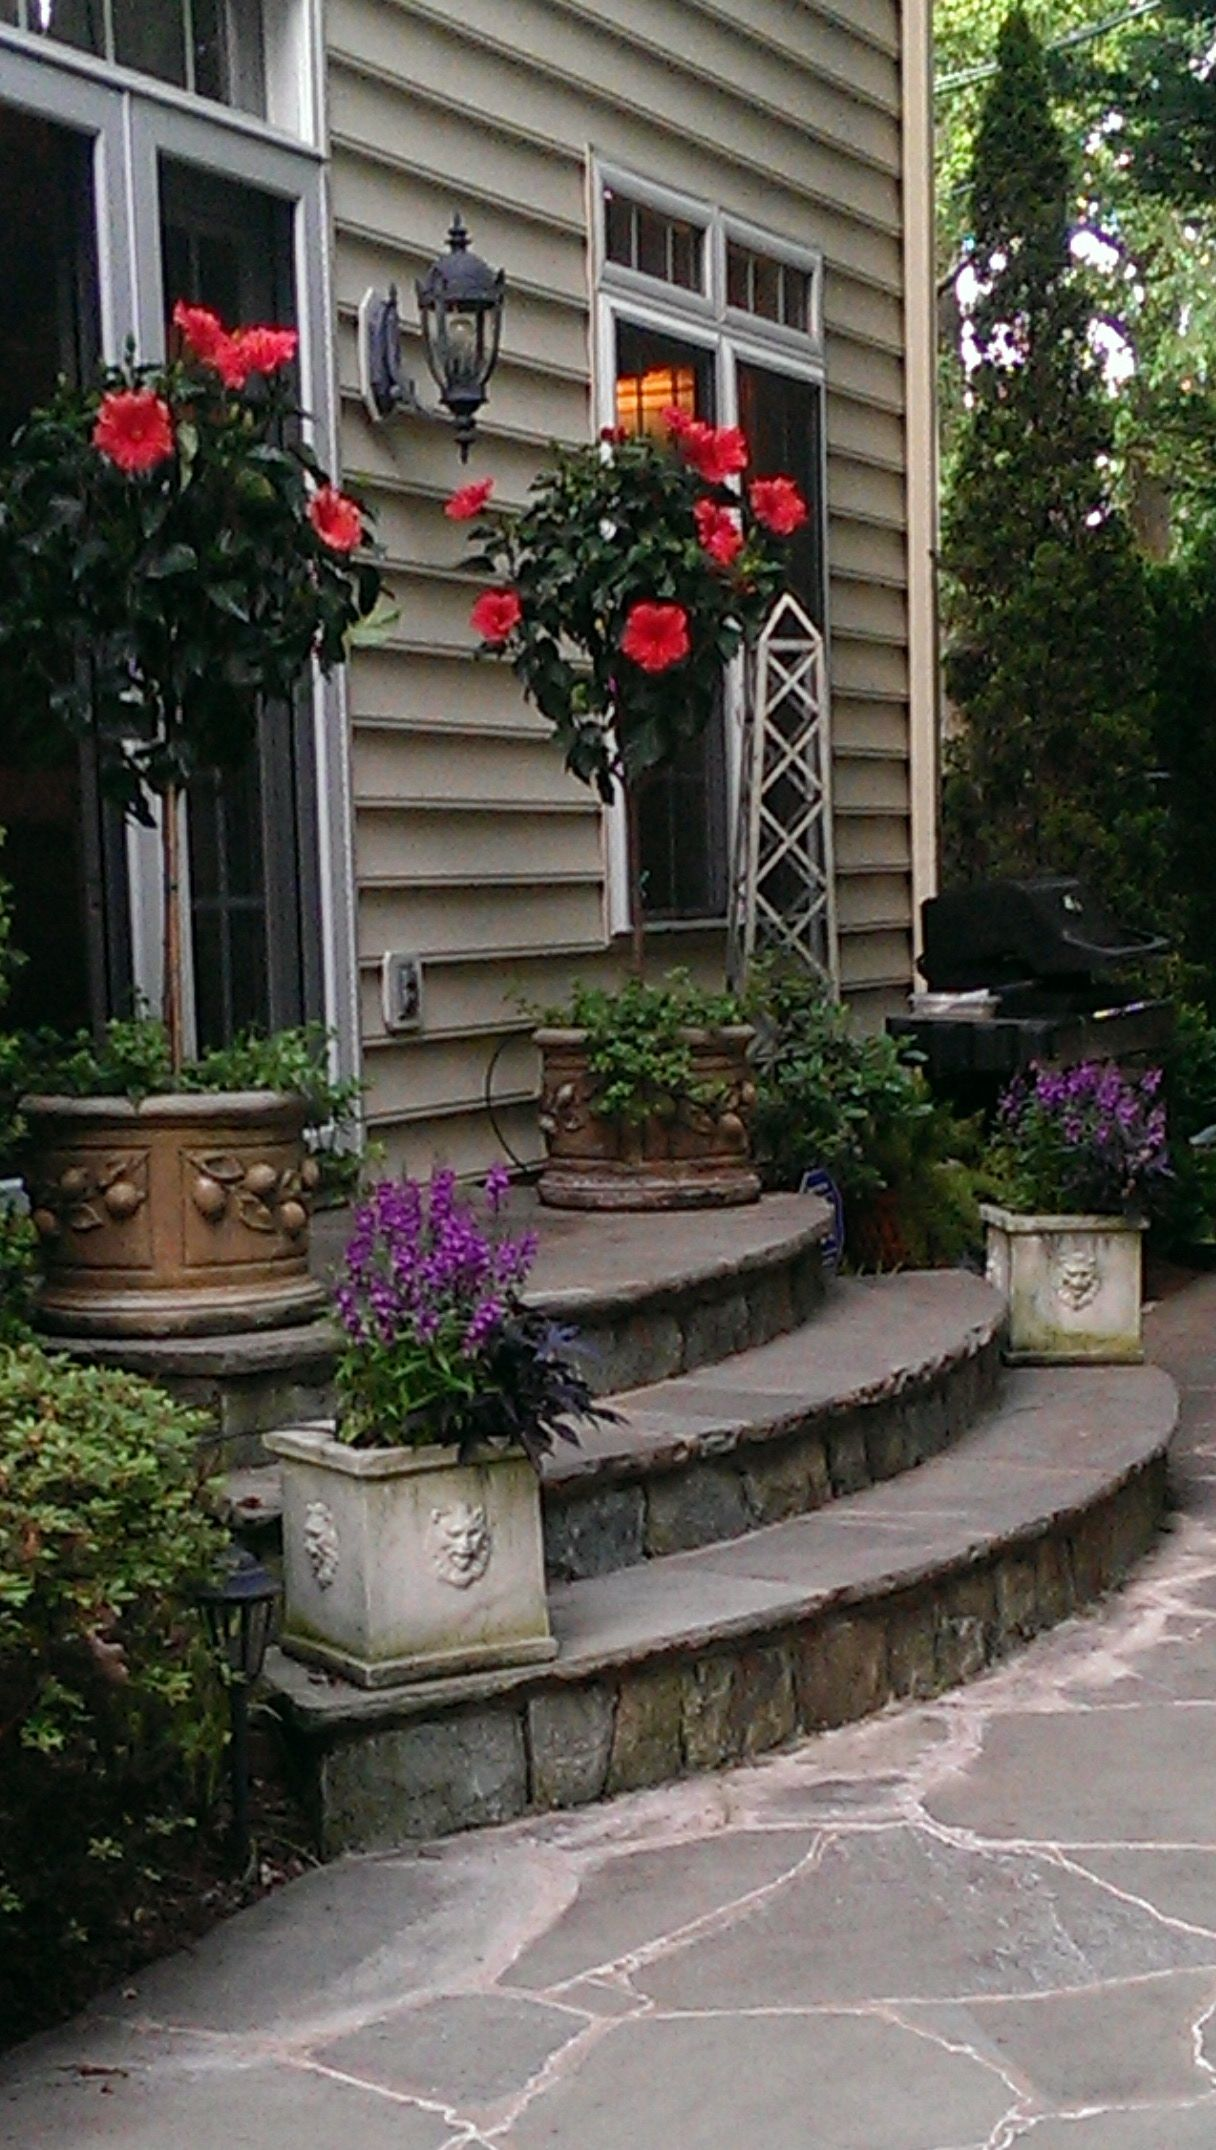 Landscaping ideas for front yard with porch  Pretty exterior entrance  Exterior House  Pinterest  Stone patio